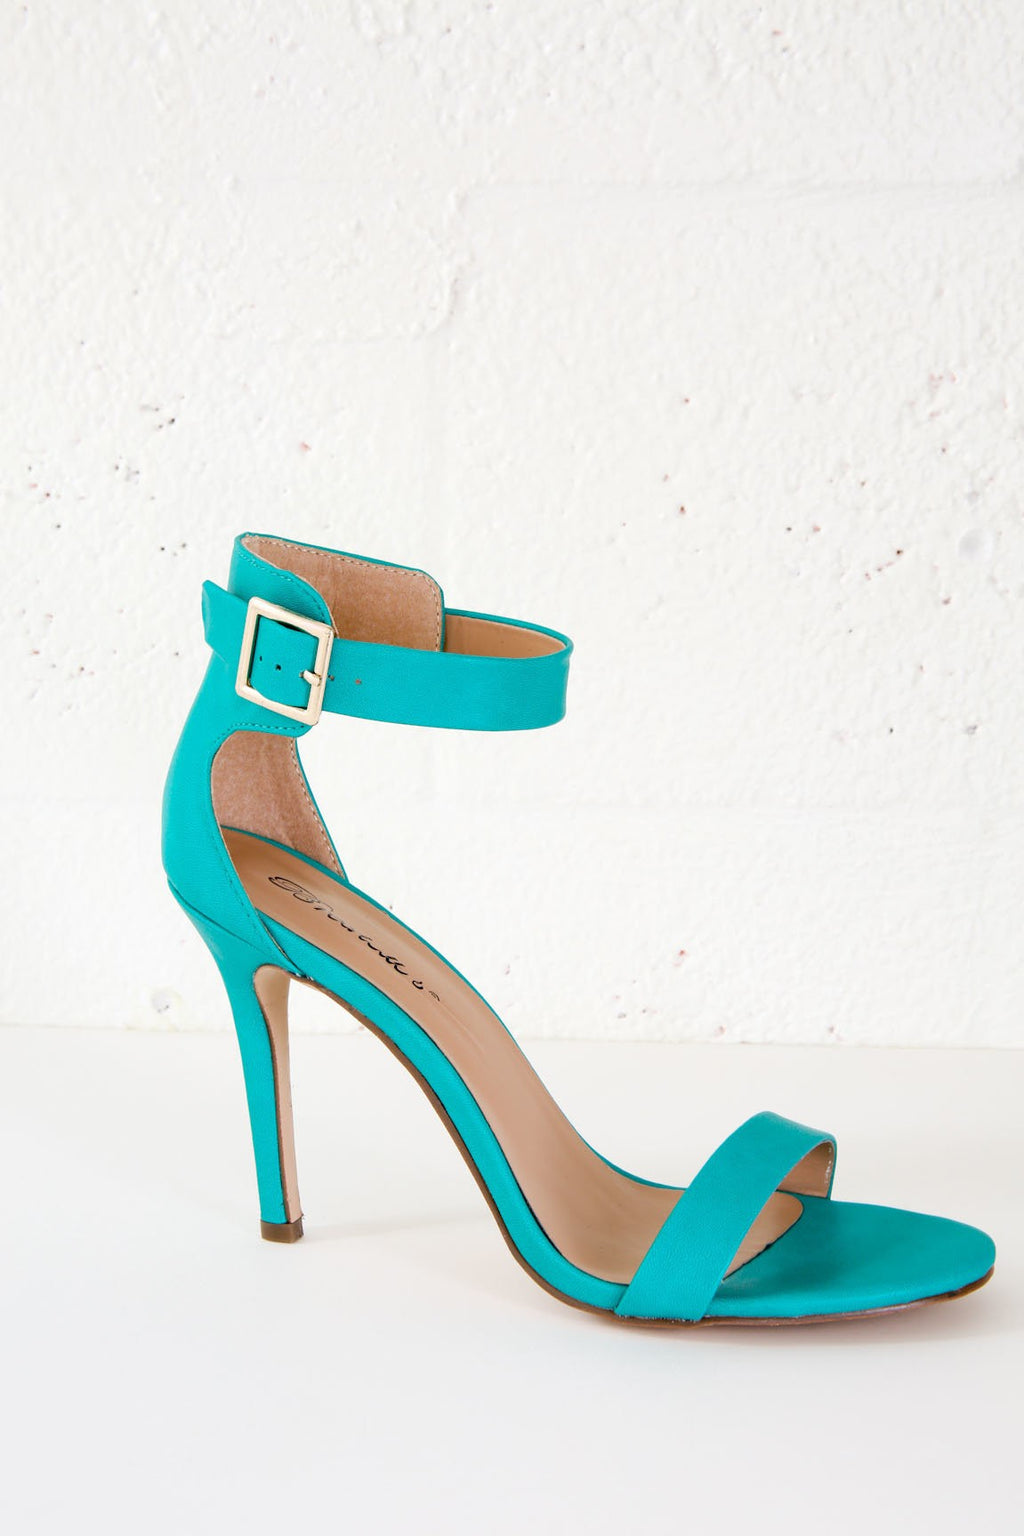 Faux Leather Single Sole Ankle Strap Heels | vendor-unknown